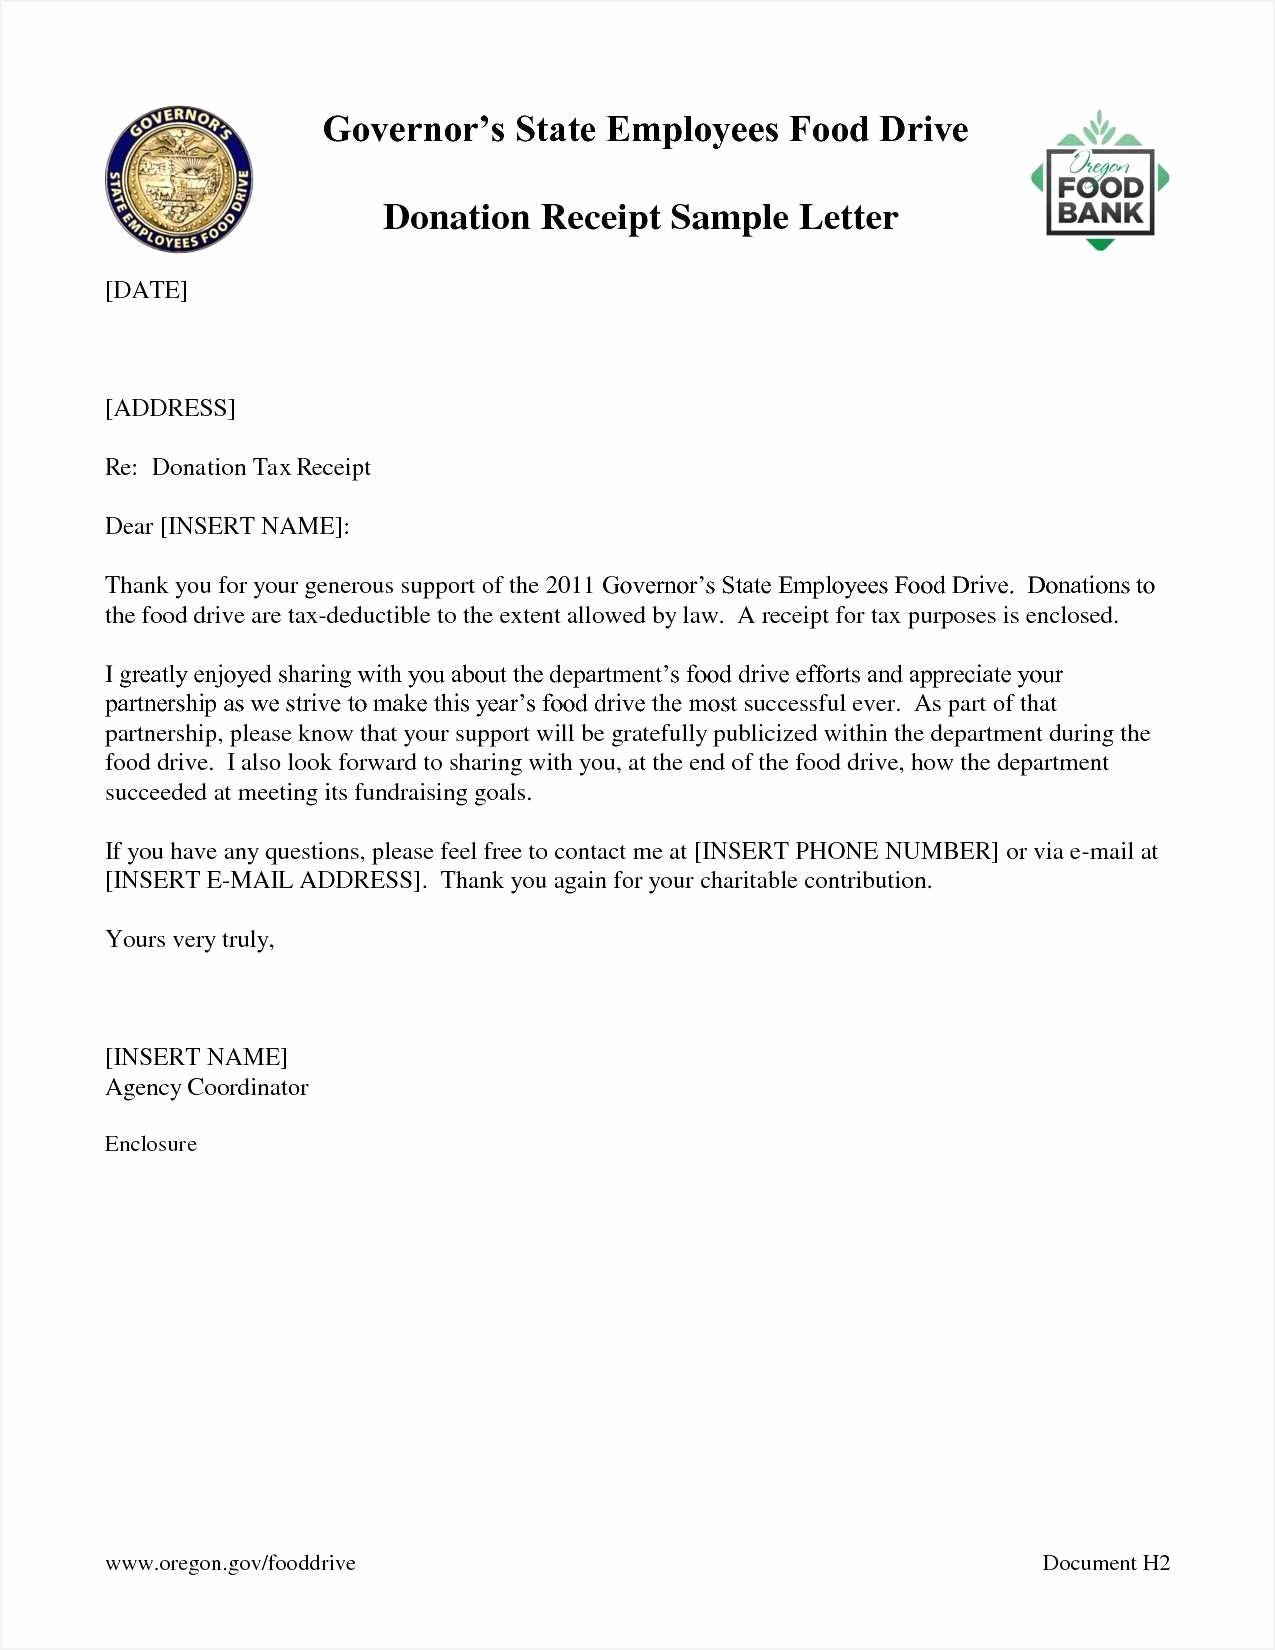 Donation Receipt Letter Template Unique Valid Sample Letter Requesting Donation Charity